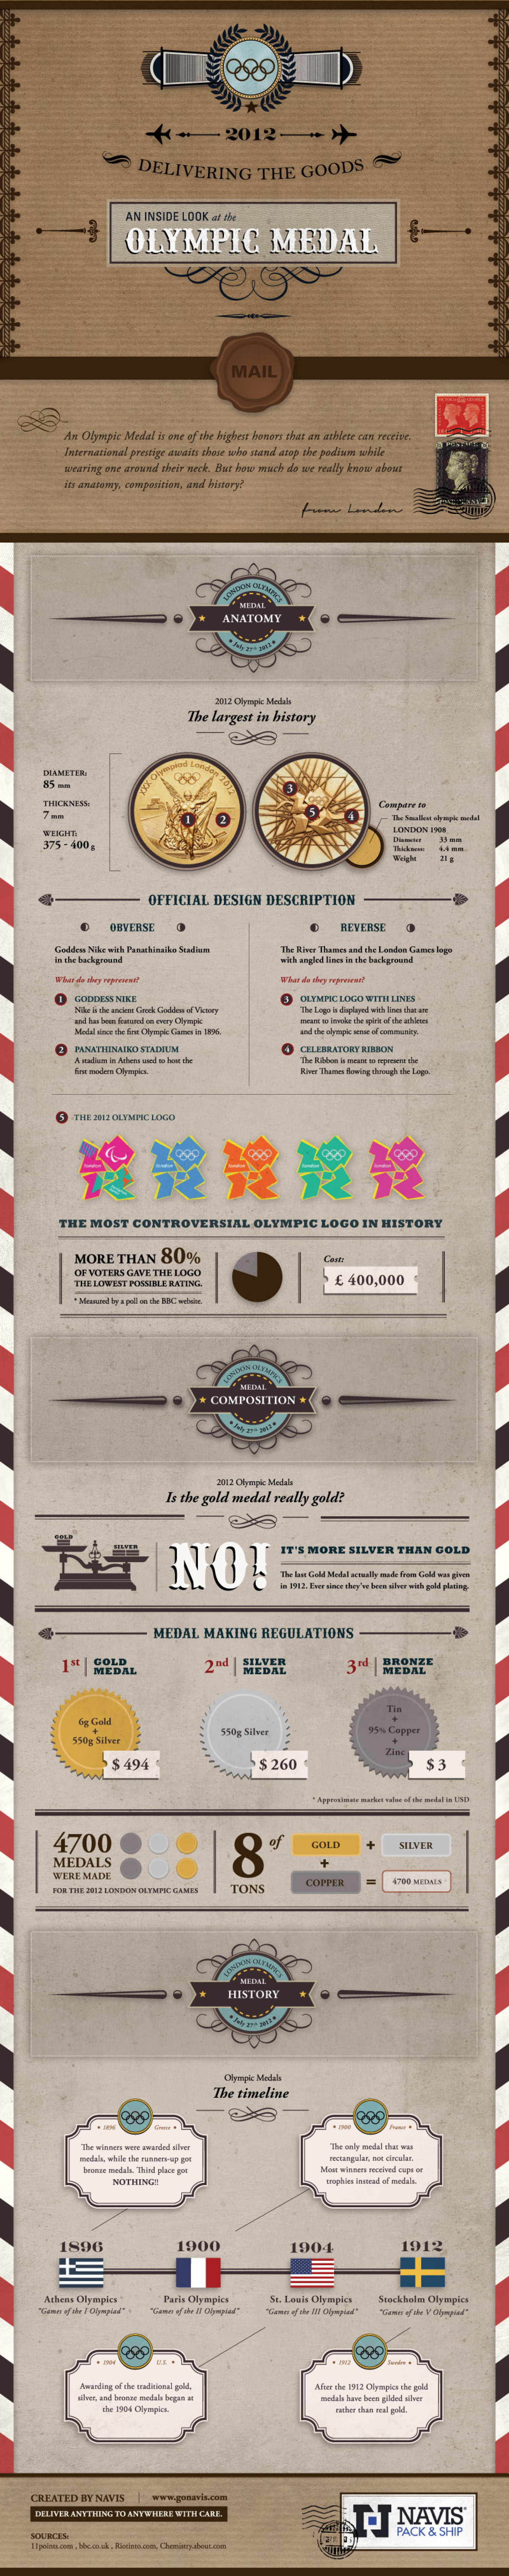 Delivering the Goods: An Inside Look at the Olympic Medal Infographic